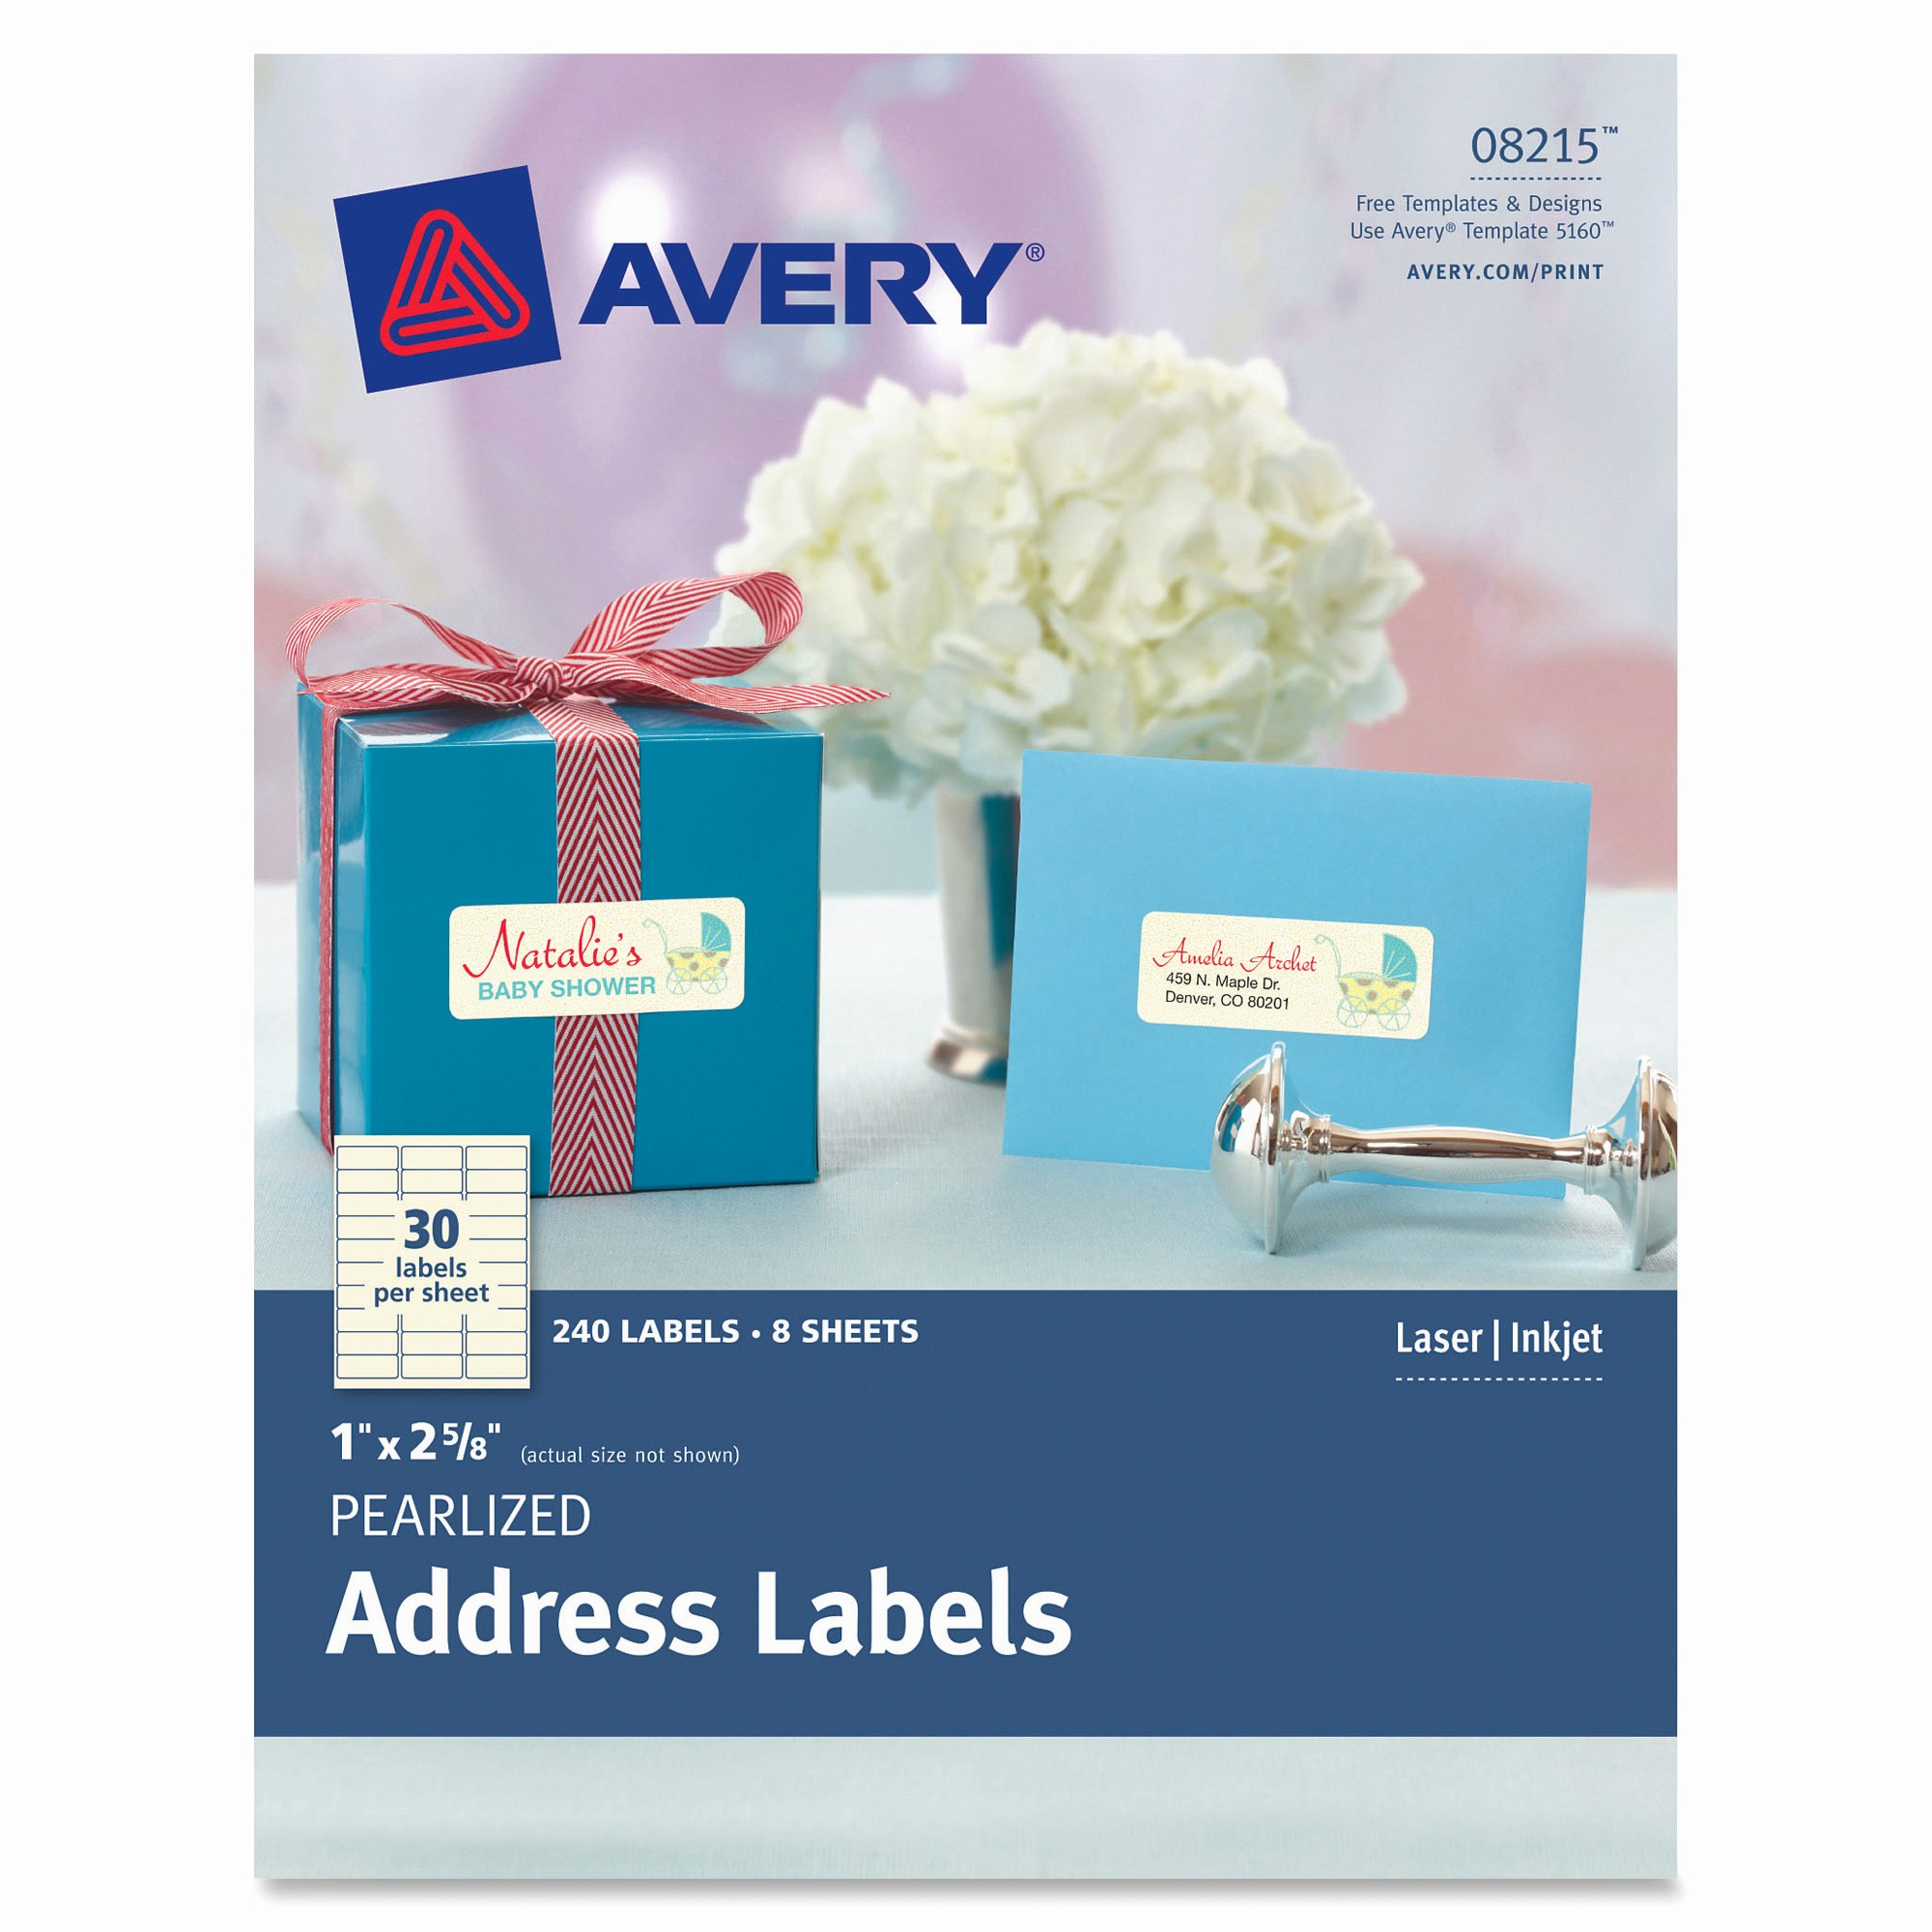 Avery 30 Per Sheet Labels Unique Avery 8215 Pearlized Address Labels 240 Pack Permanent